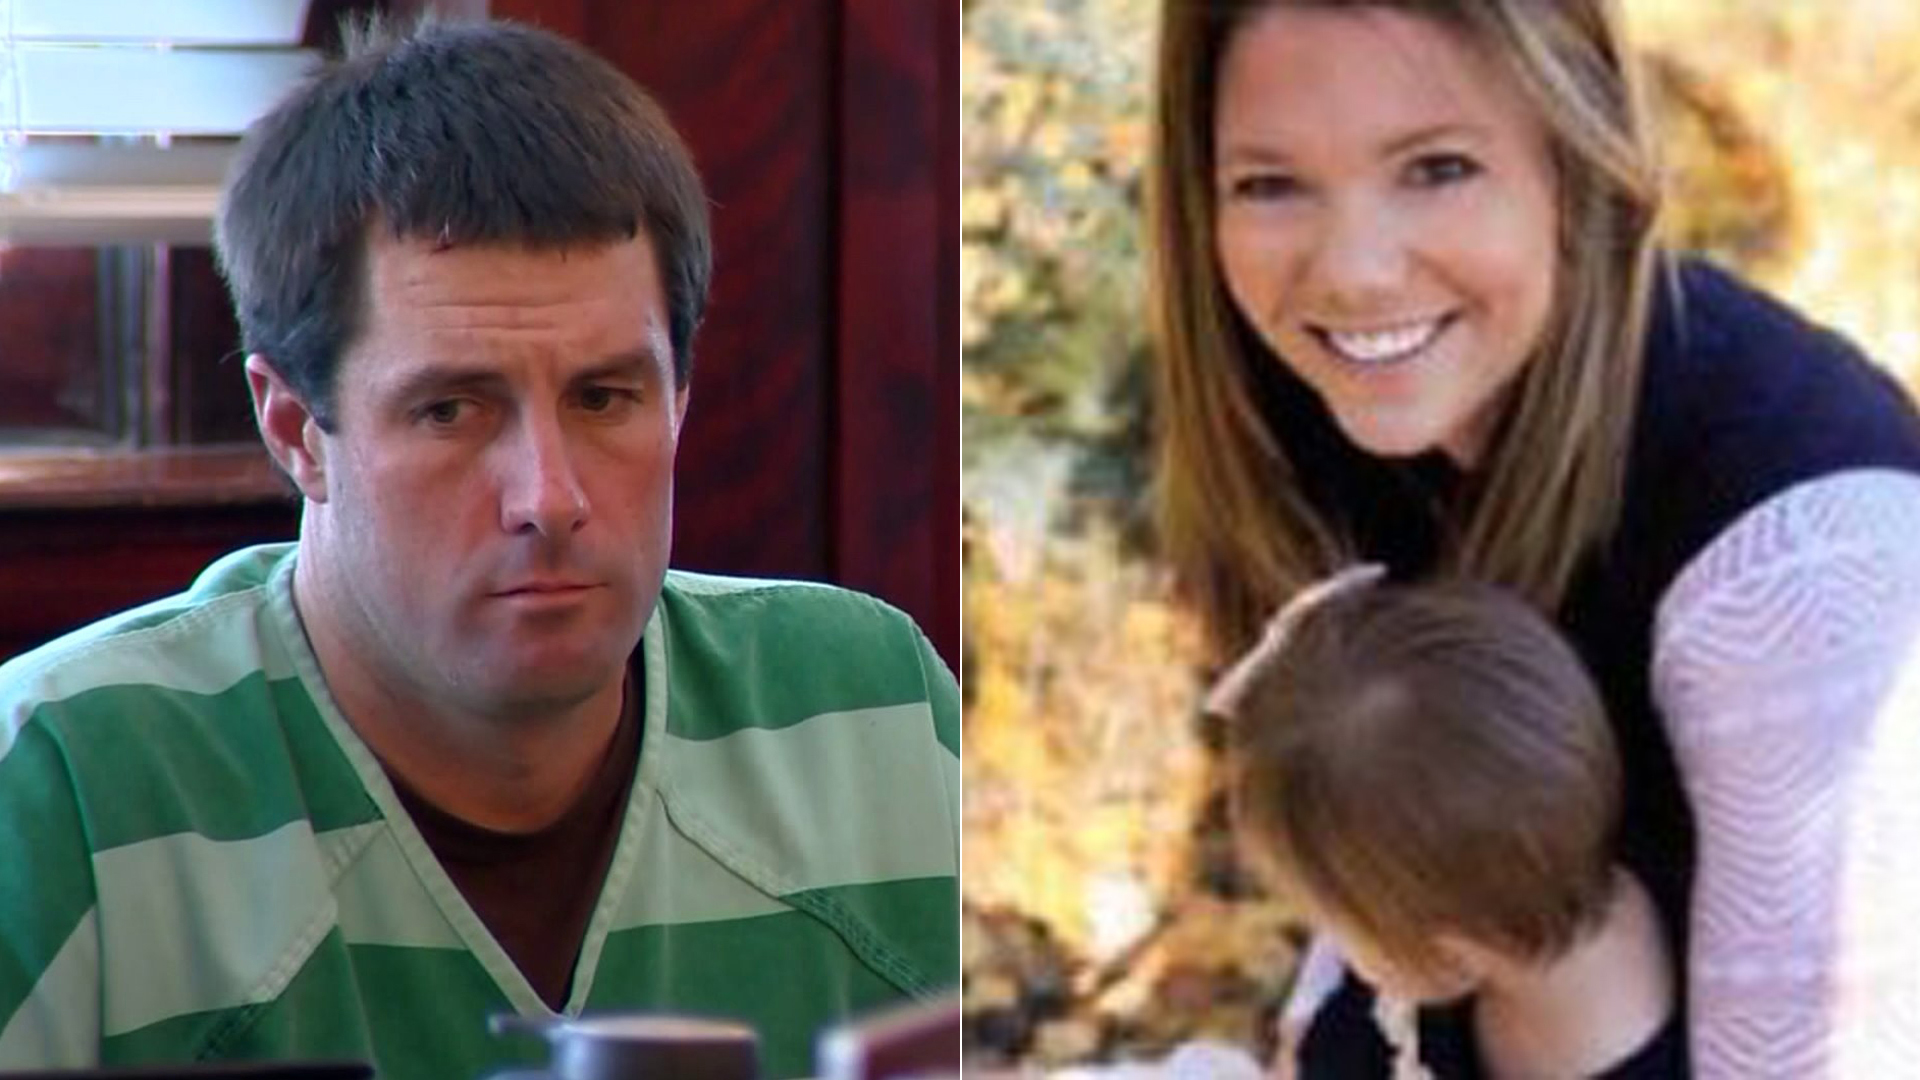 Left: Patrick Frazee is seen in court on Dec. 31, 2018. (Credit: KDVR); Right: Kelsey Berreth is seen in an image provided by the Woodland Park Police Department.